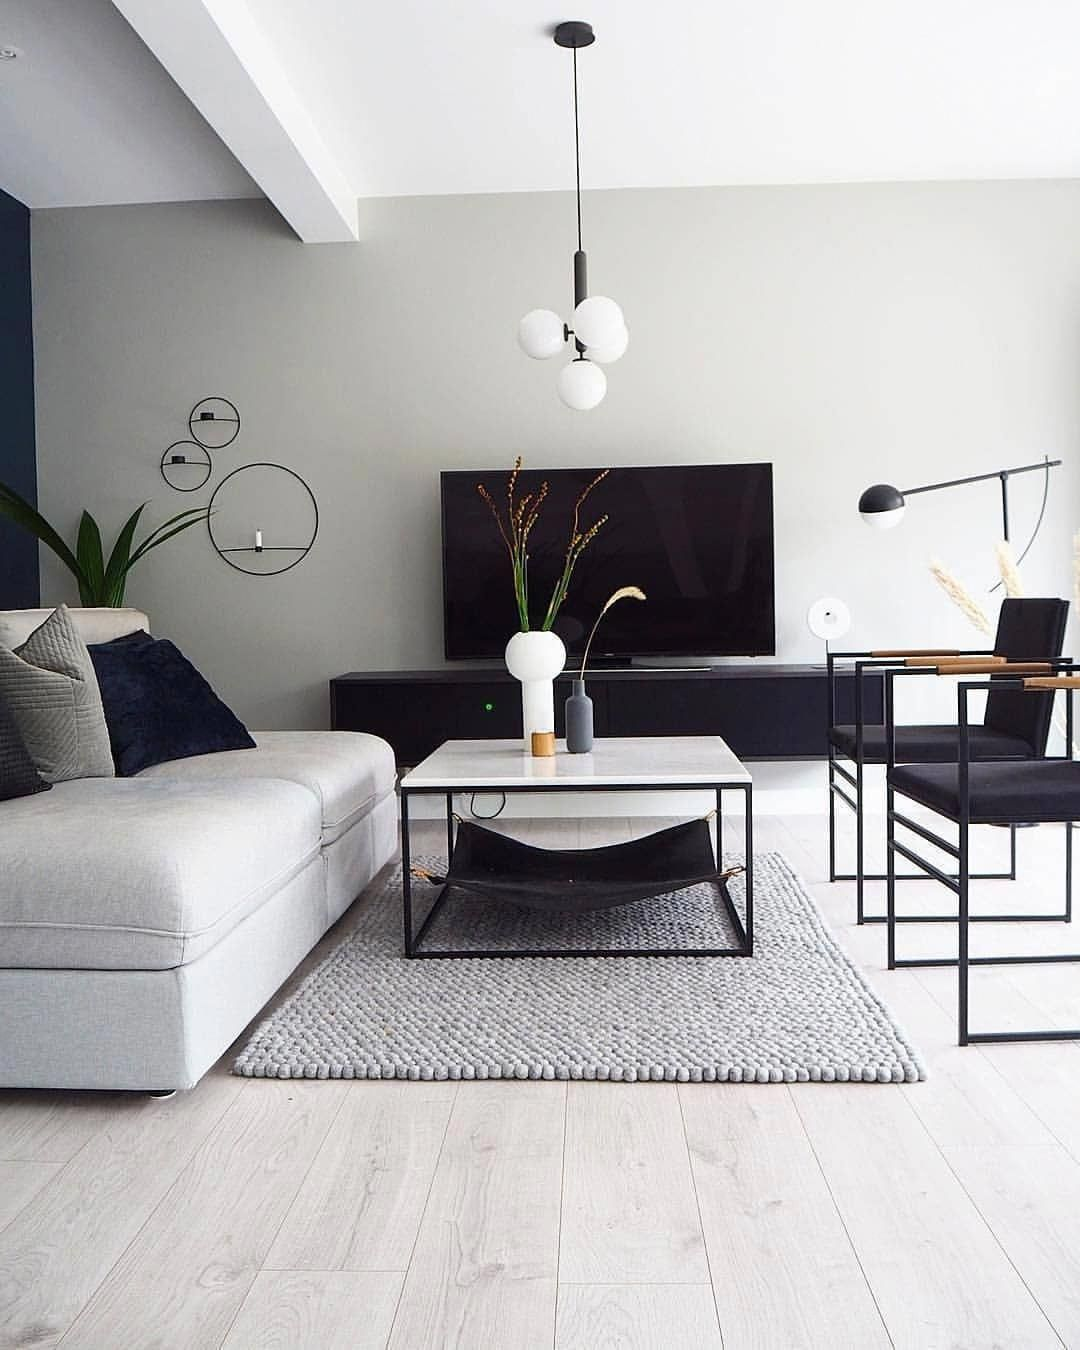 Decorate Your Living Room With These 14 Inspiring Wall Ideas Monotone Home Theme Modernliving Monochrome Living Room Minimalist Living Room Living Room Grey